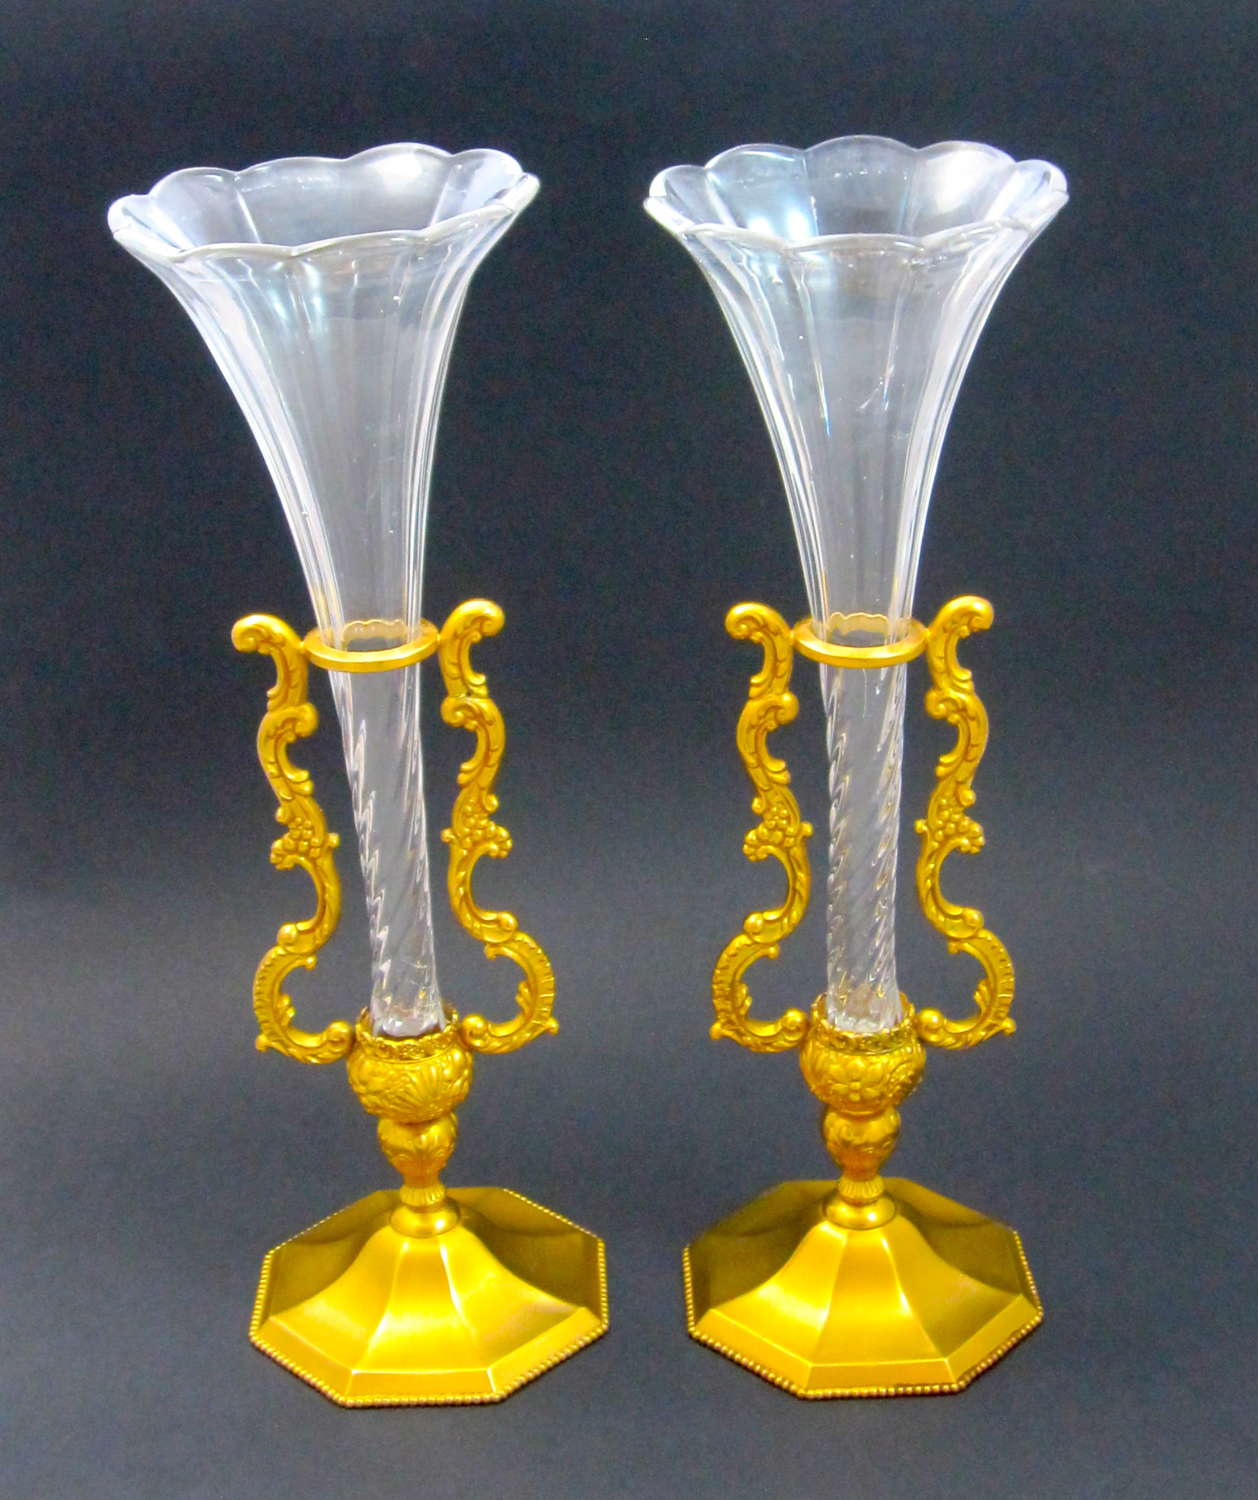 Pair of Elegant Signed E.G Webster & Son Cut Crystal Vases